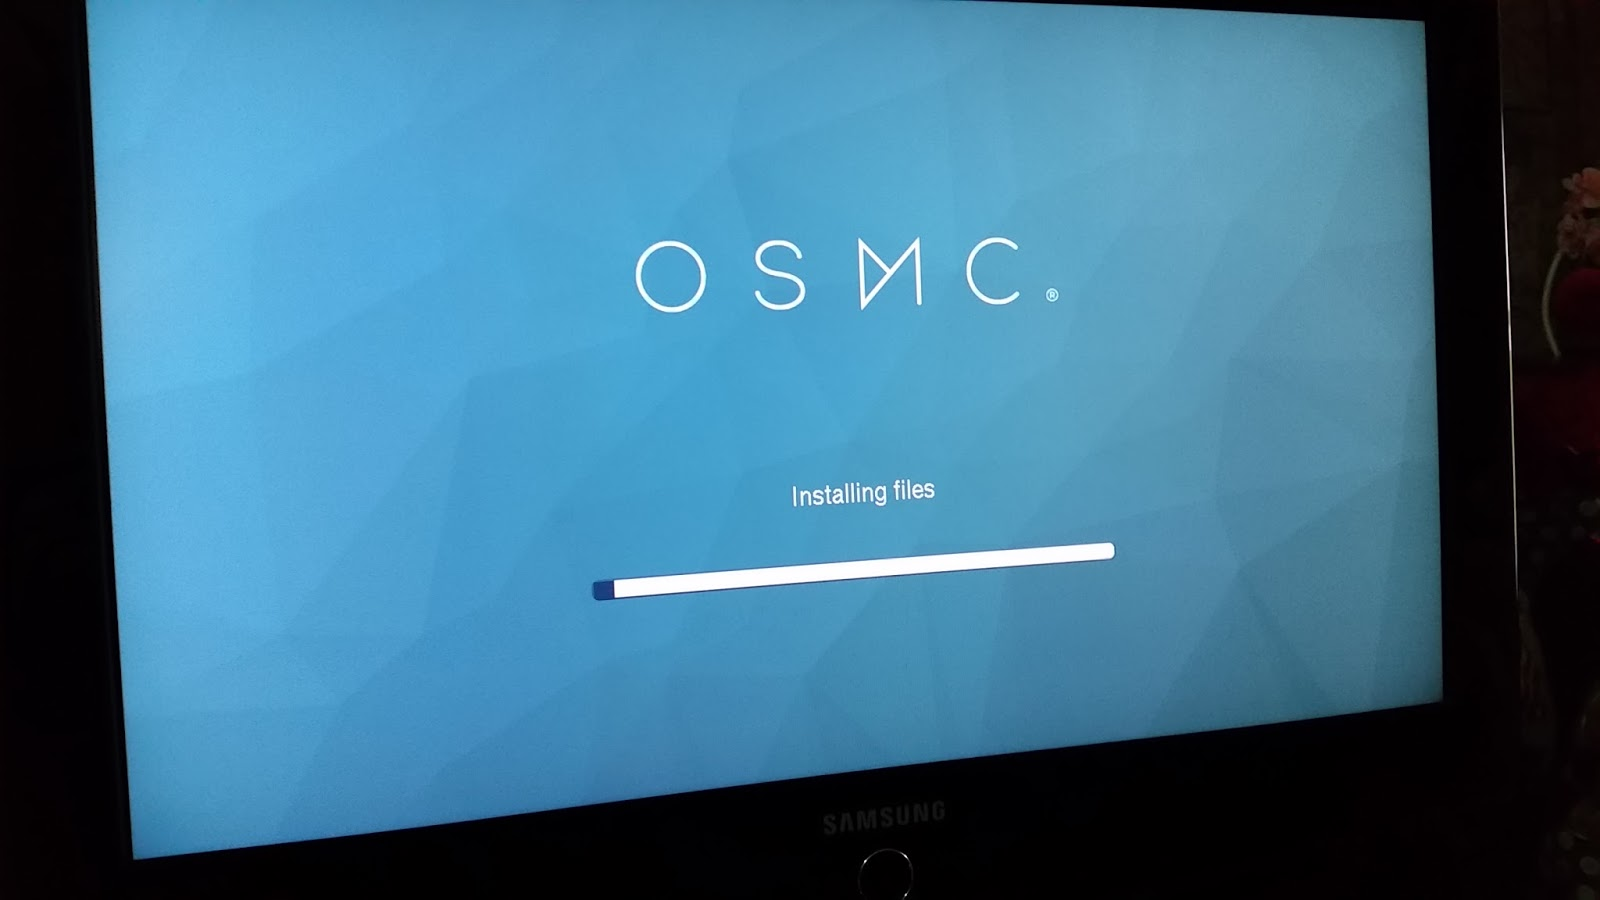 Linux, OpenOffice org and Open Source Software: Install OSMC